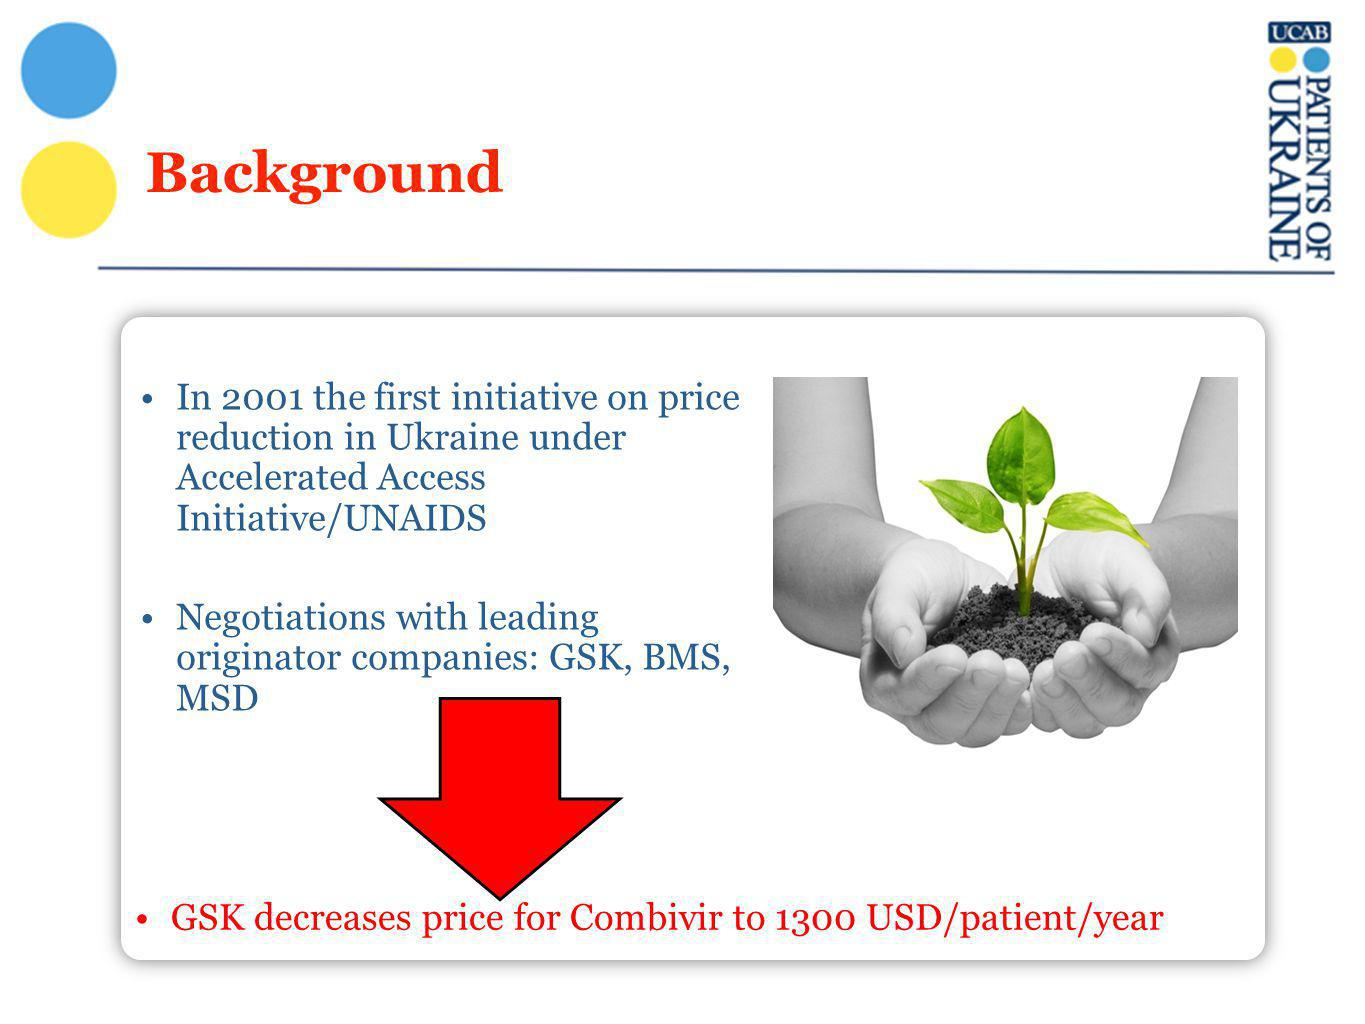 Background In 2001 the first initiative on price reduction in Ukraine under Accelerated Access Initiative/UNAIDS Negotiations with leading originator companies: GSK, BMS, MSD GSK decreases price for Combivir to 1300 USD/patient/year